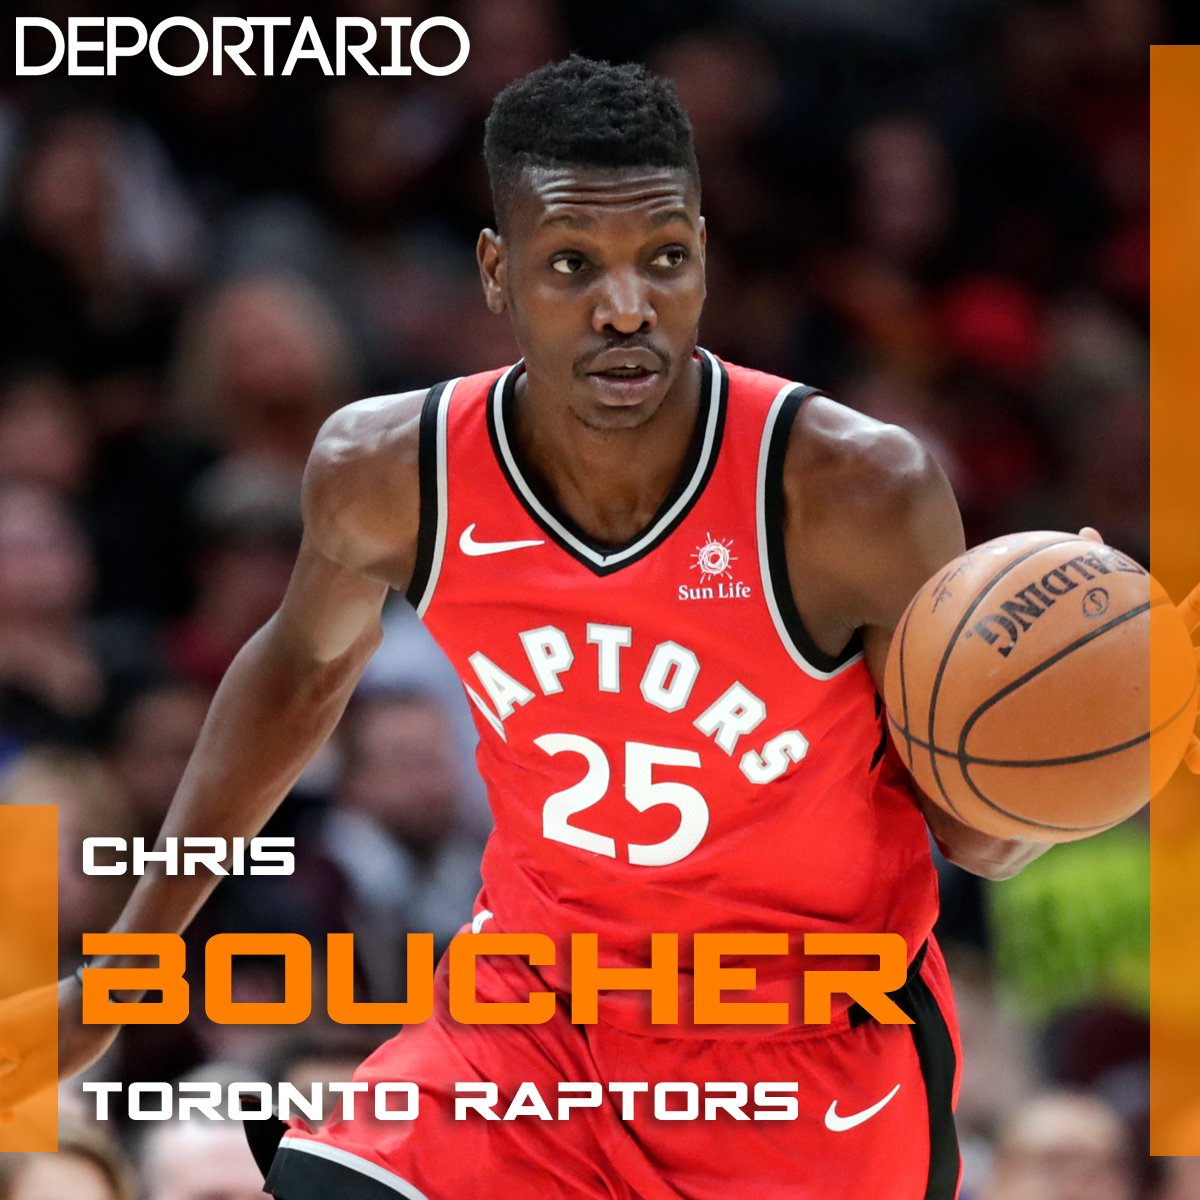 #NBA | Resultados del lunes:  🏀 #WeTheNorth 114 (Boucher 25 pts) – #FearTheDeer 106 (Korver 19 pts)  🏀 #IndianaStyle 92 (Oladipo 14 pts) – #HEATTwitter 114 (Butler 19 pts) https://t.co/ZBZ193DM7L